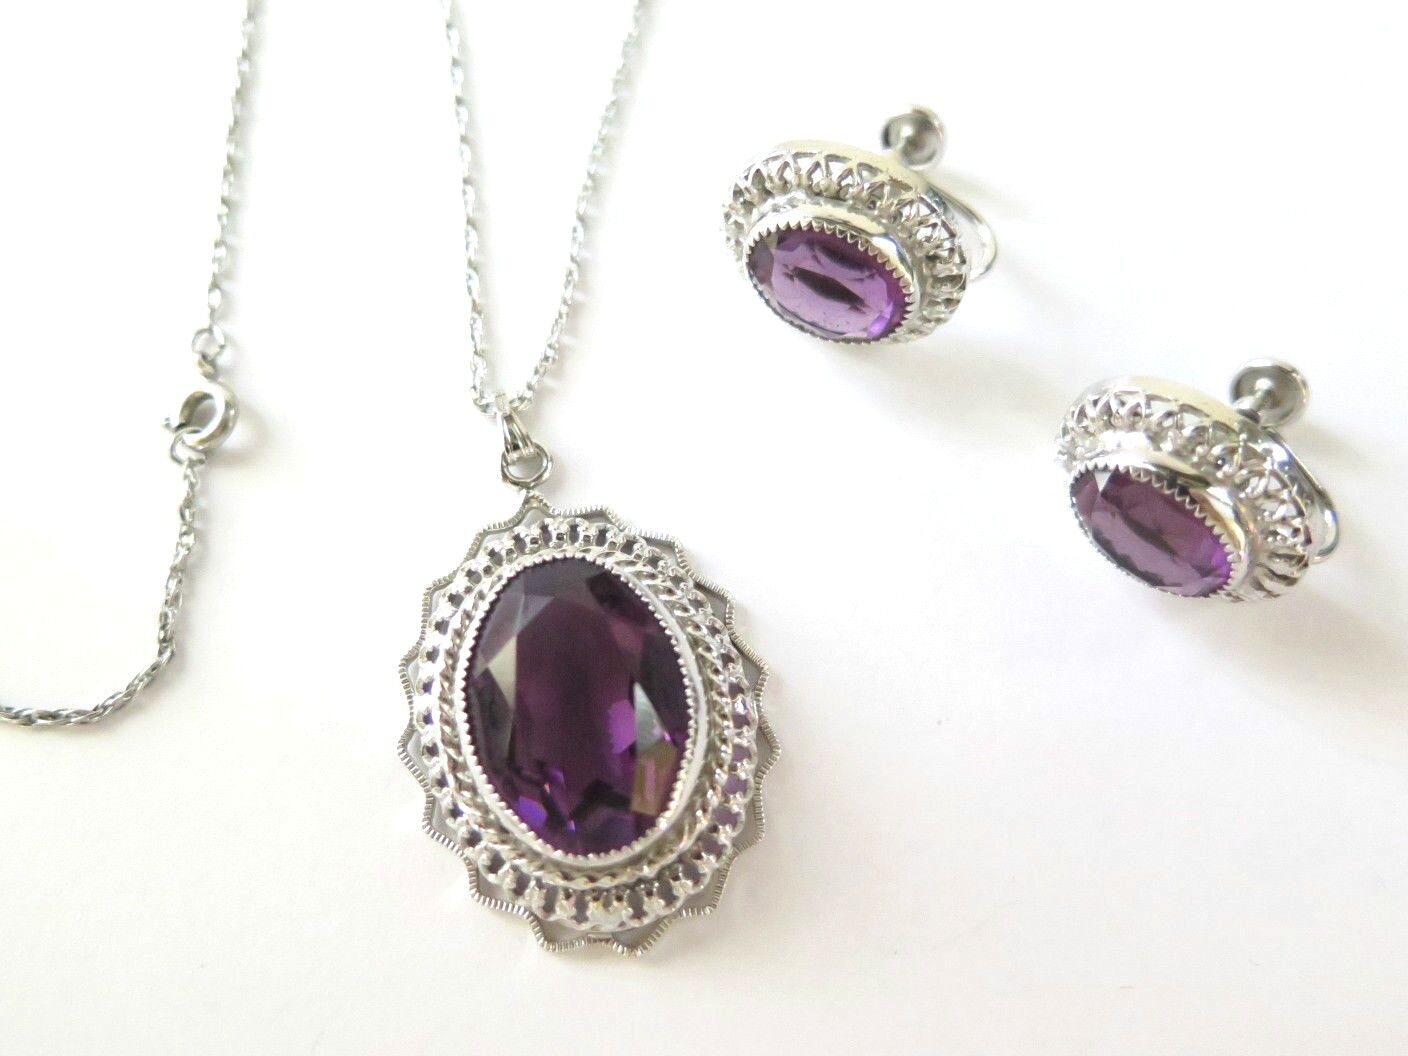 how to clean silver and amethyst necklace